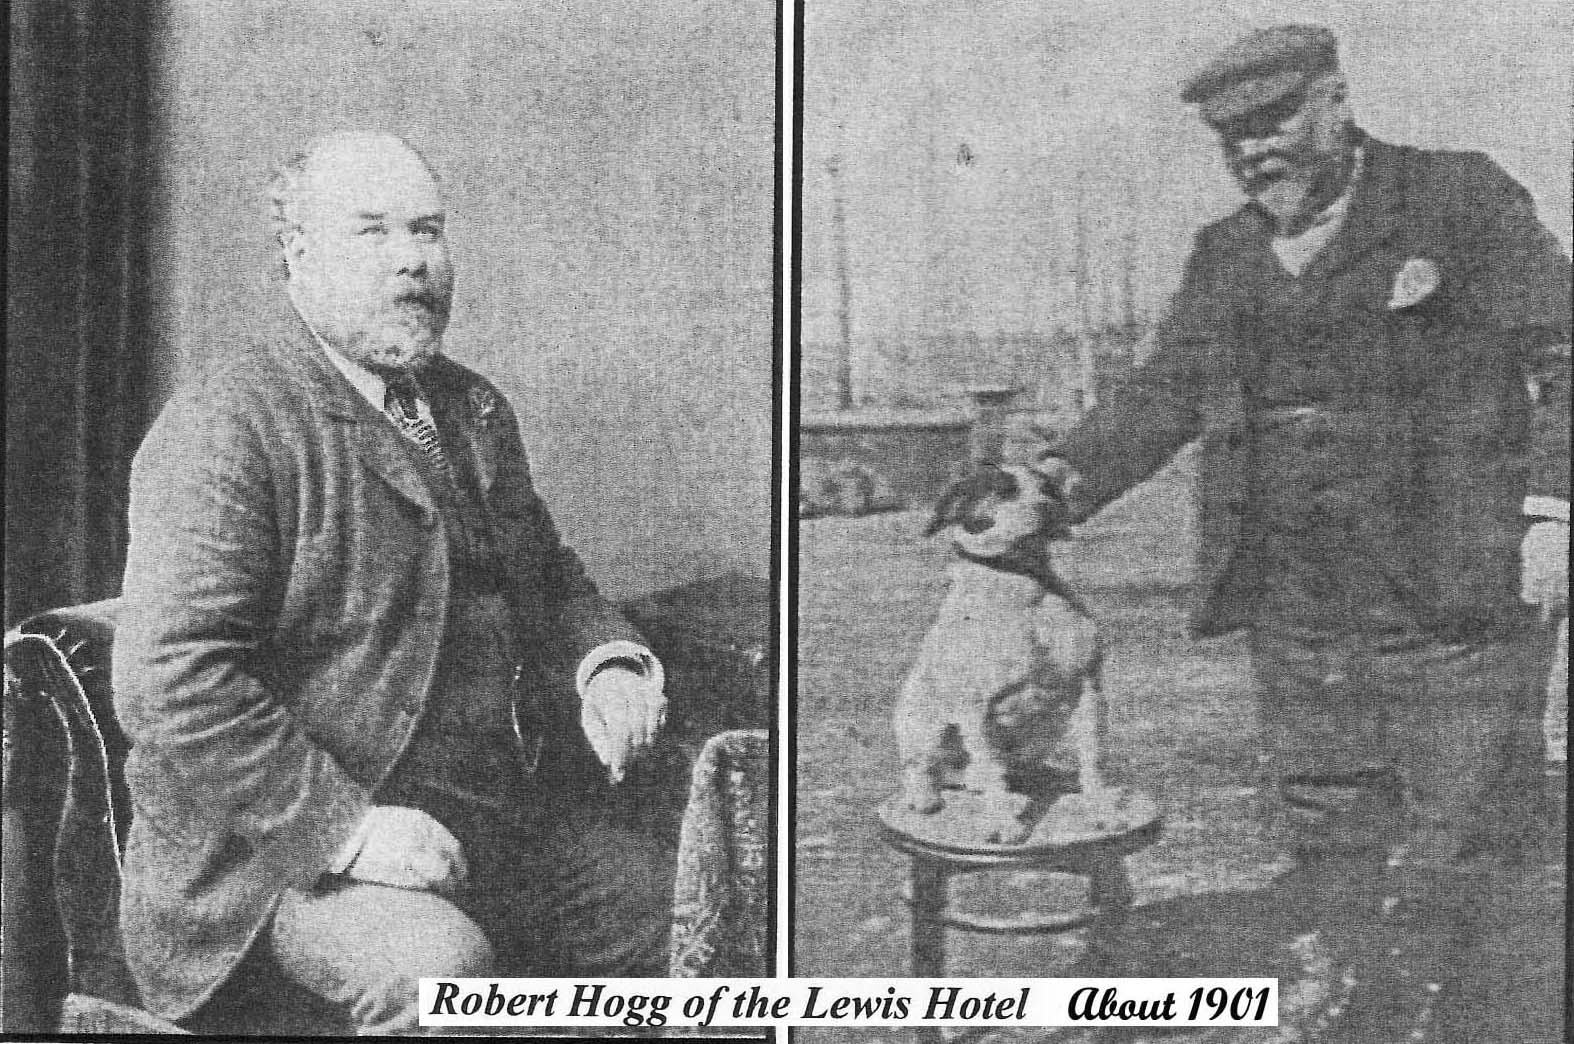 BOBBY HOGG at Lewis in 1901